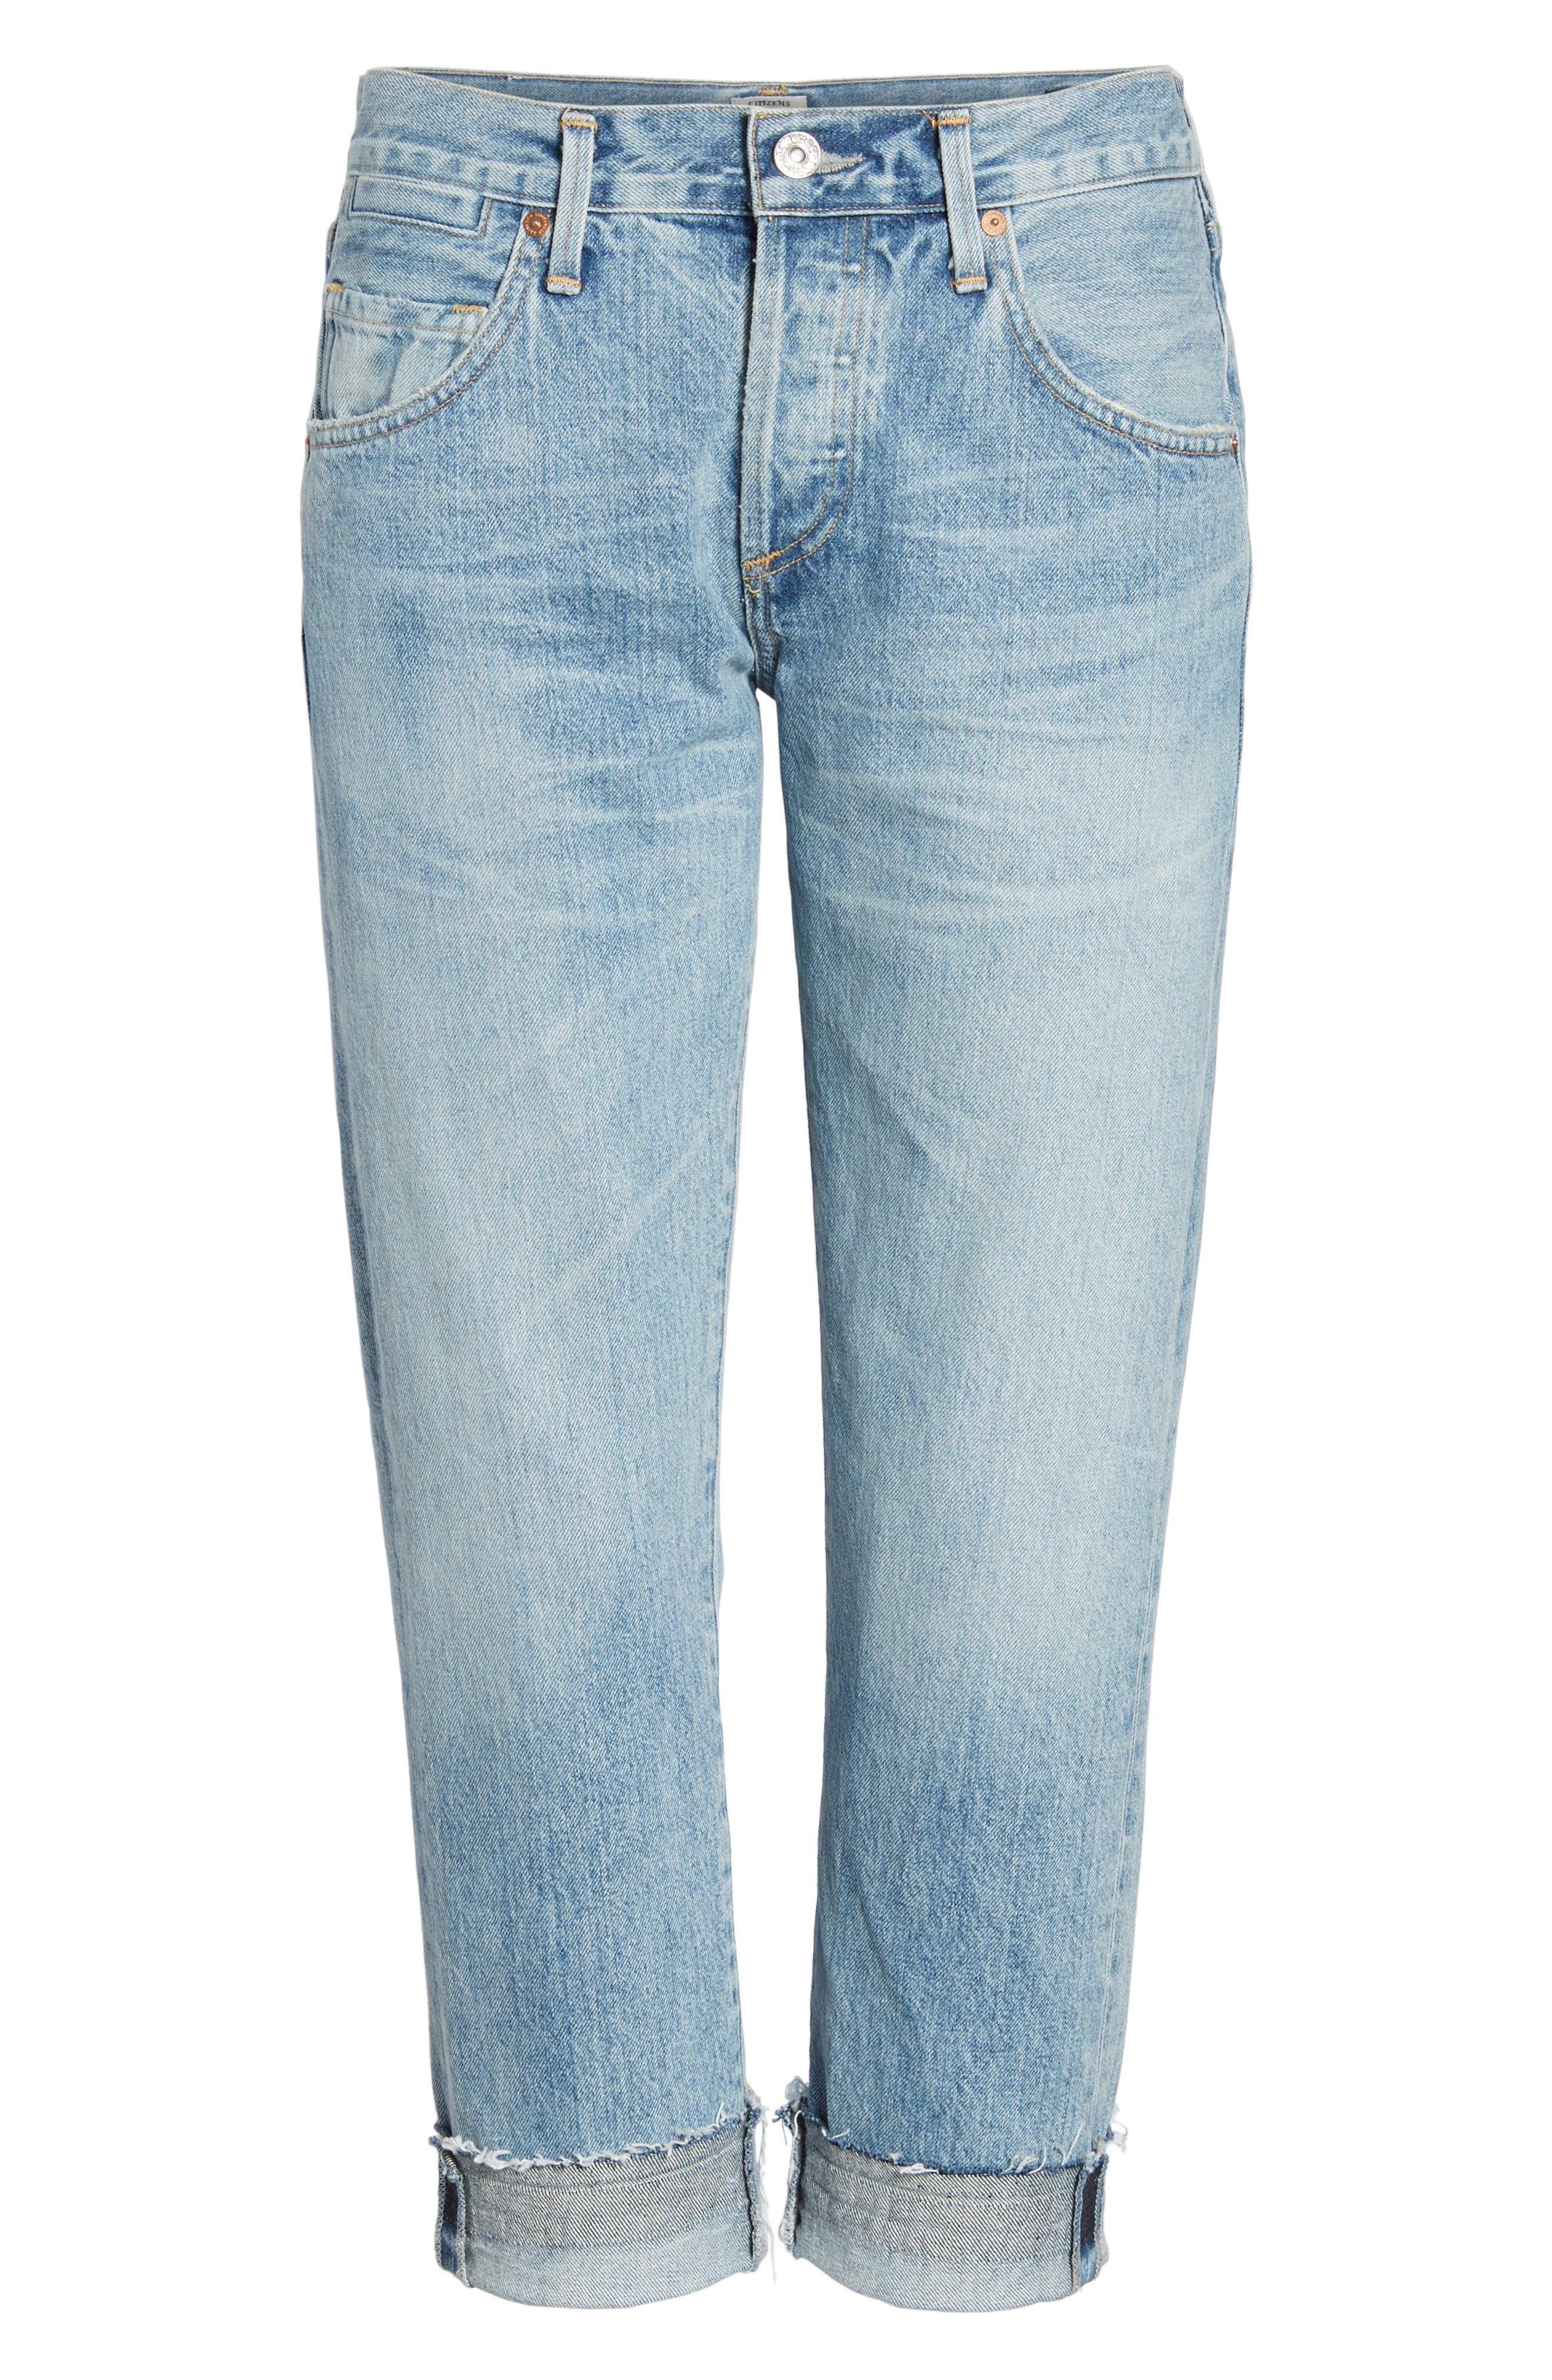 Emerson Crop Slim Fit Boyfriend Jeans,                             Alternate thumbnail 7, color,                             Stax